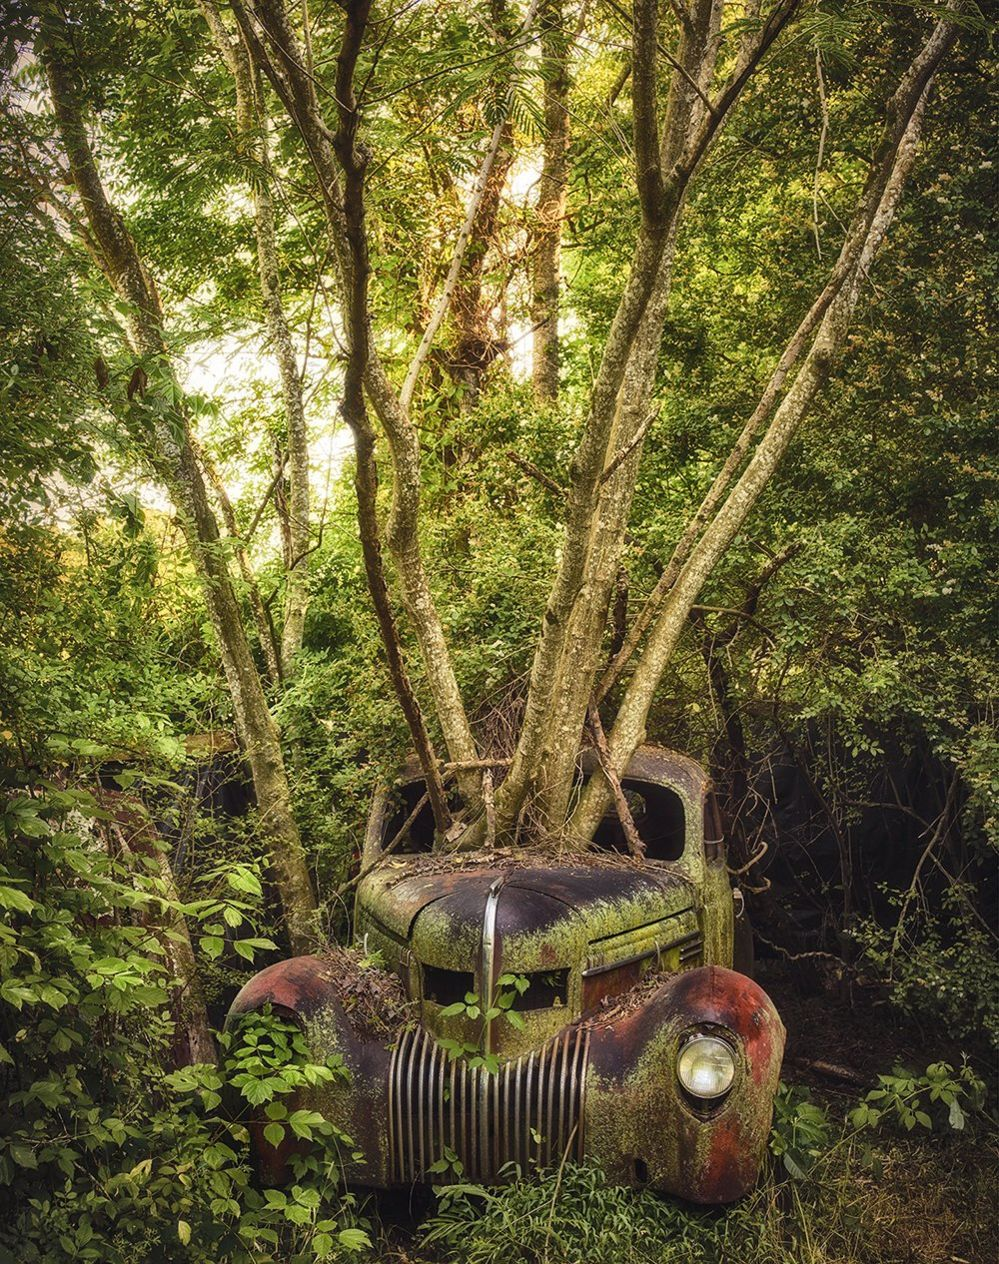 An abandoned car with a tree growing out of the bonnet